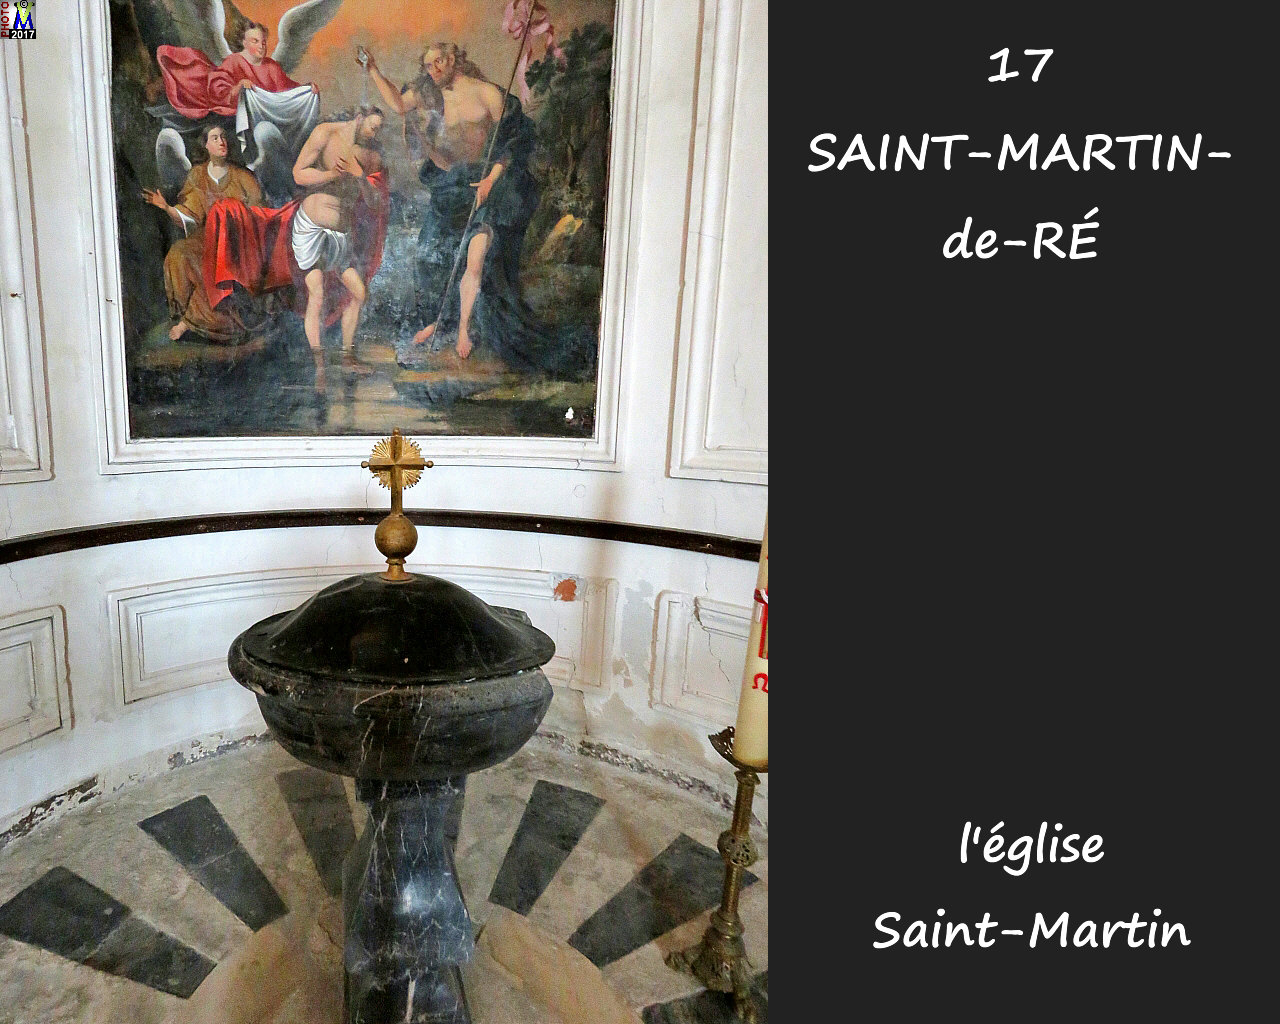 17StMARTIN-RE_eglise_1150.jpg